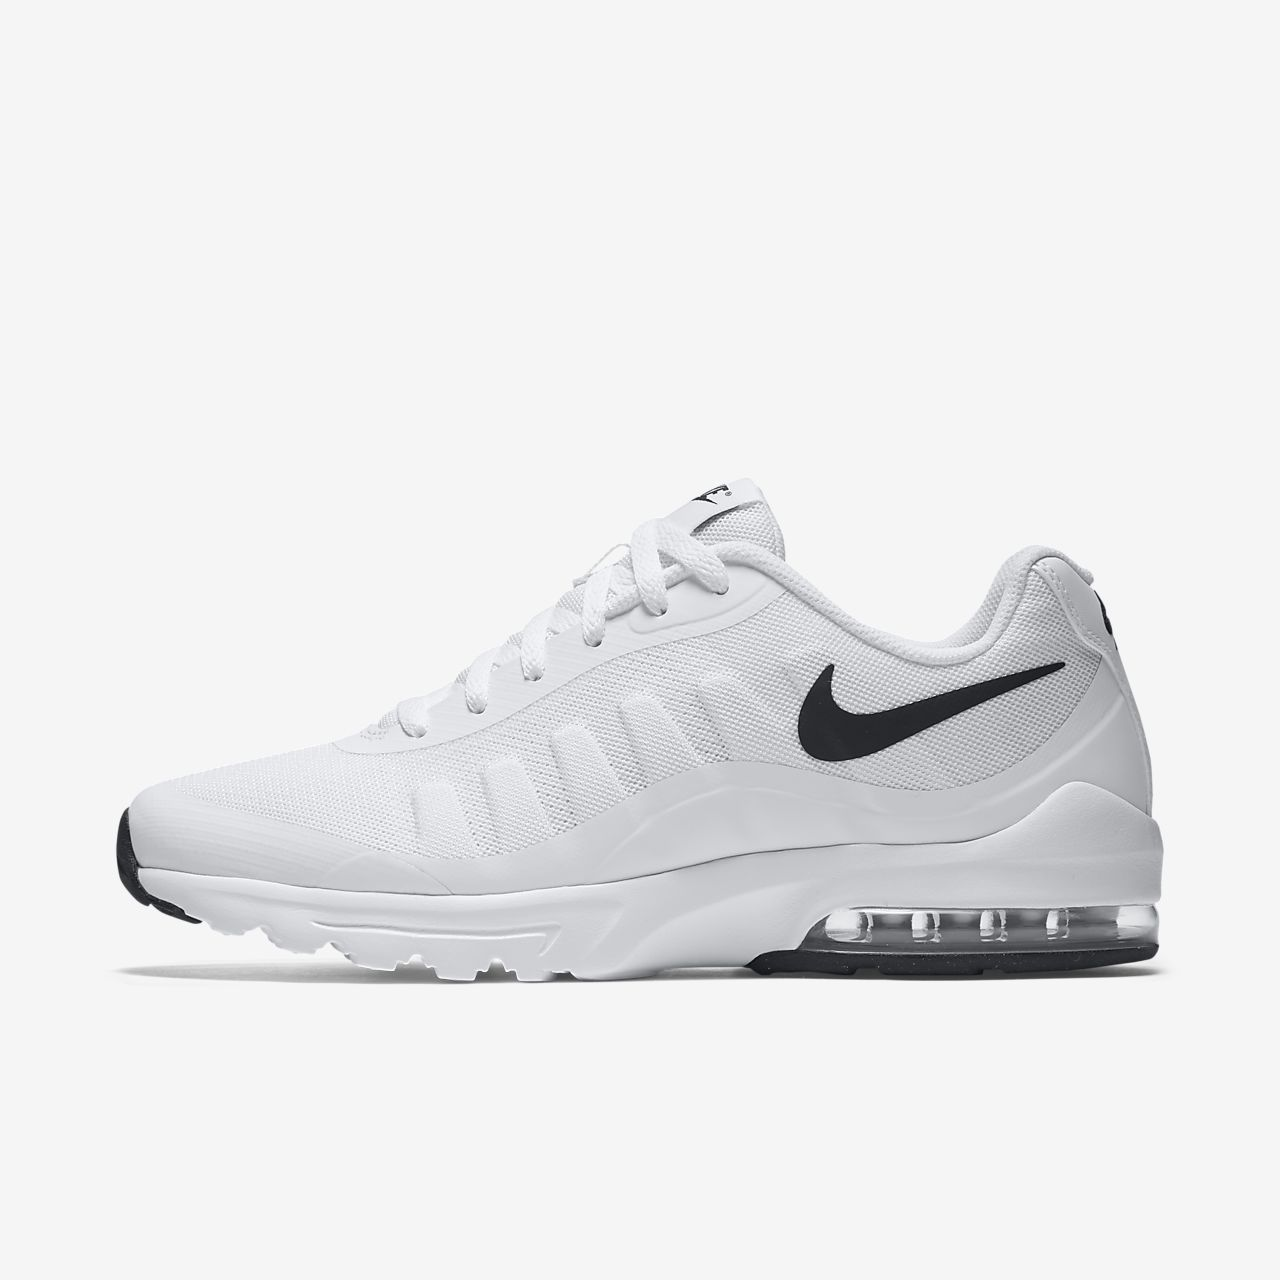 Wit Nike Herenschoenen Nike Air Max | JD Sports